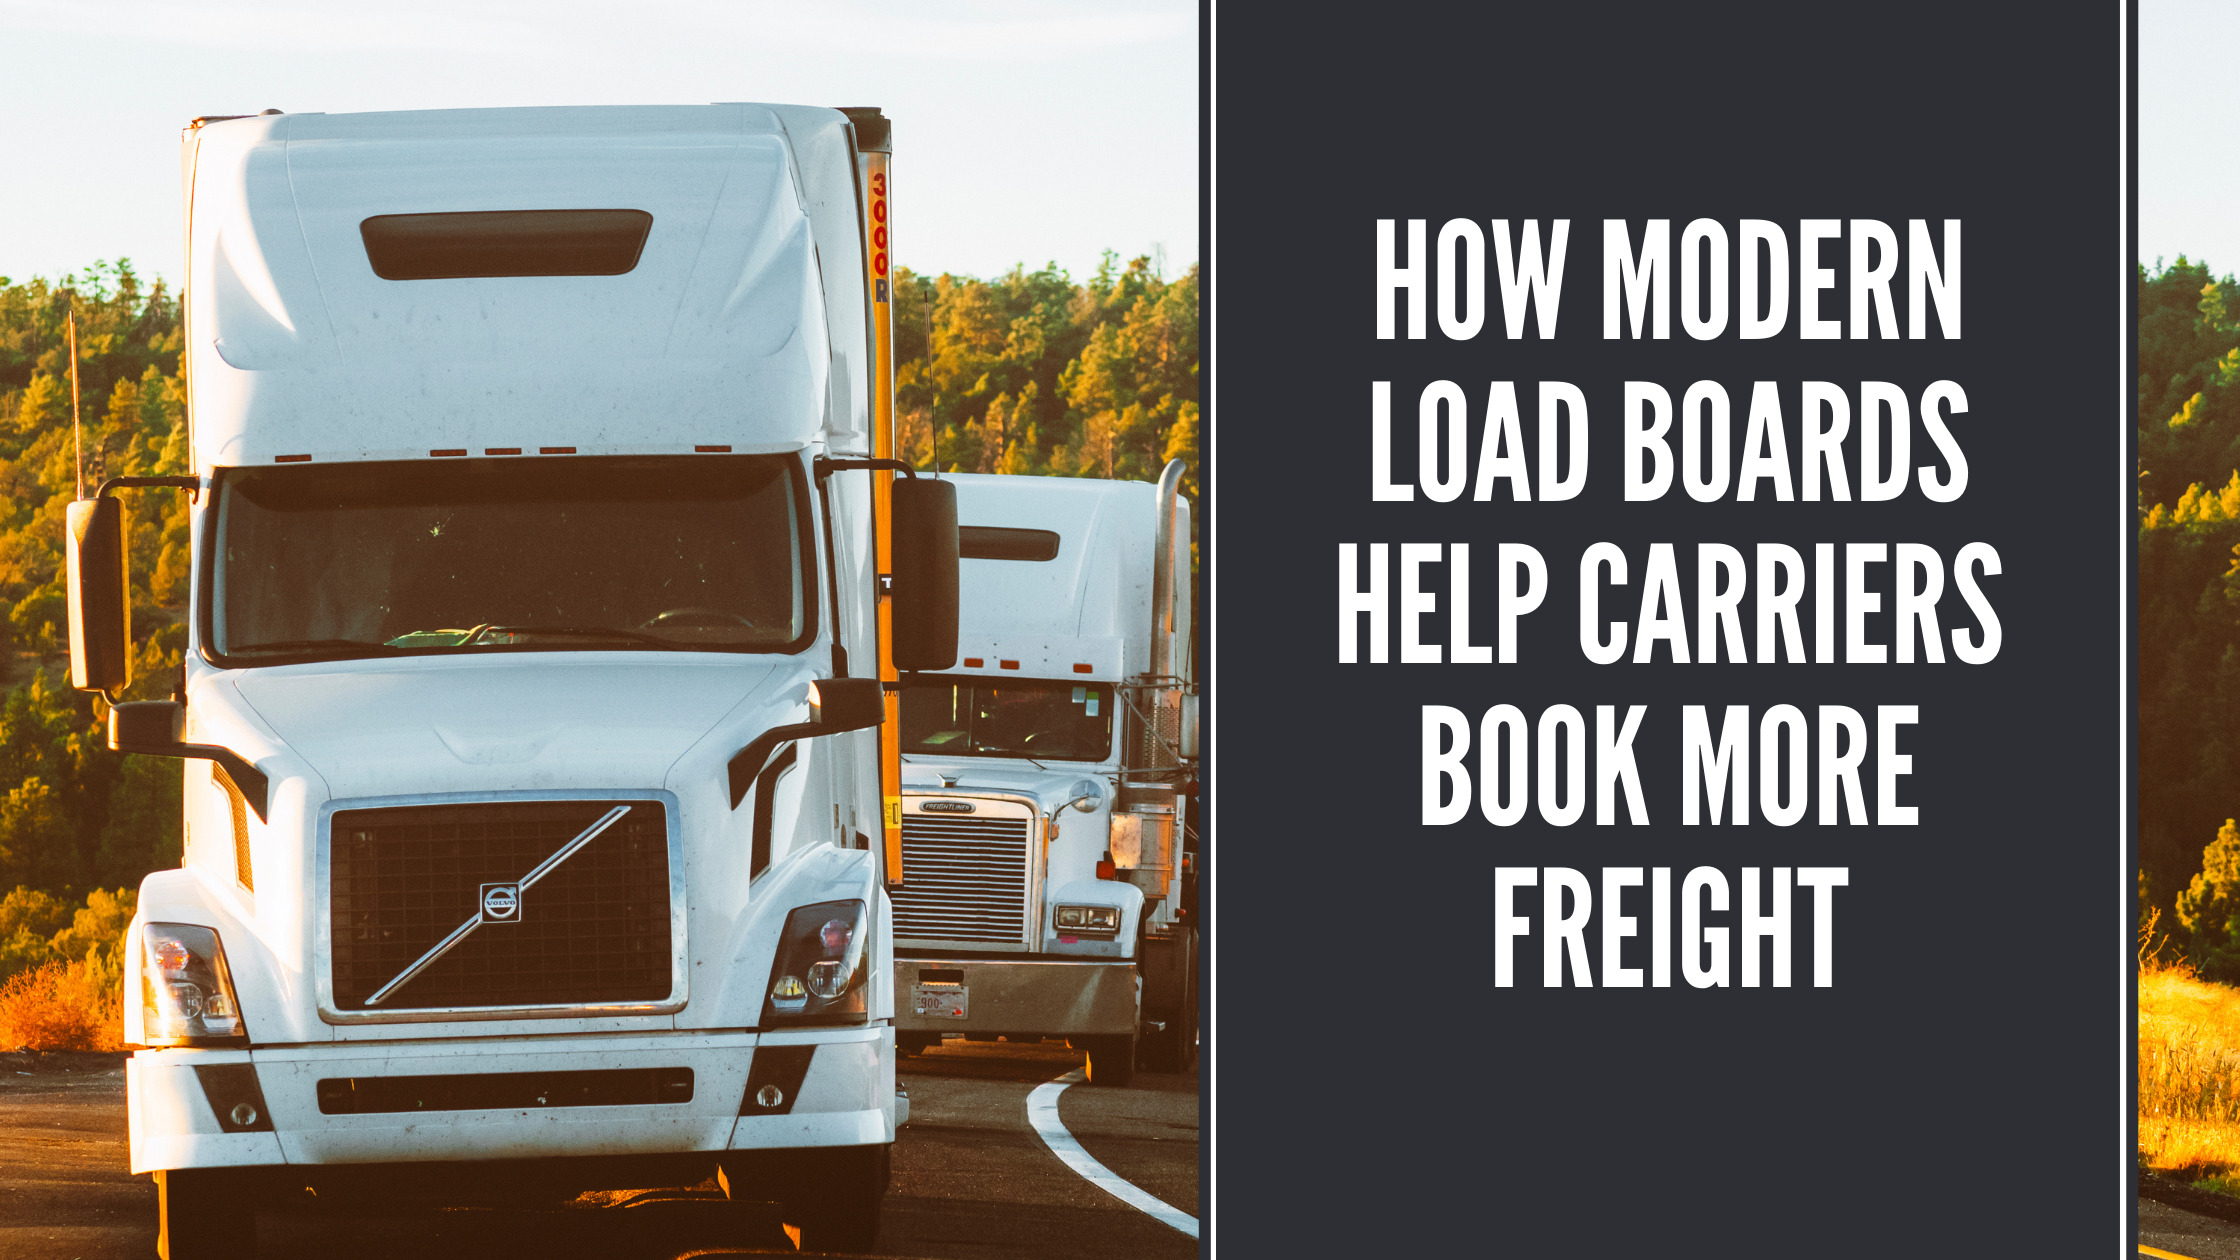 how modern load boards help carriers book more freight